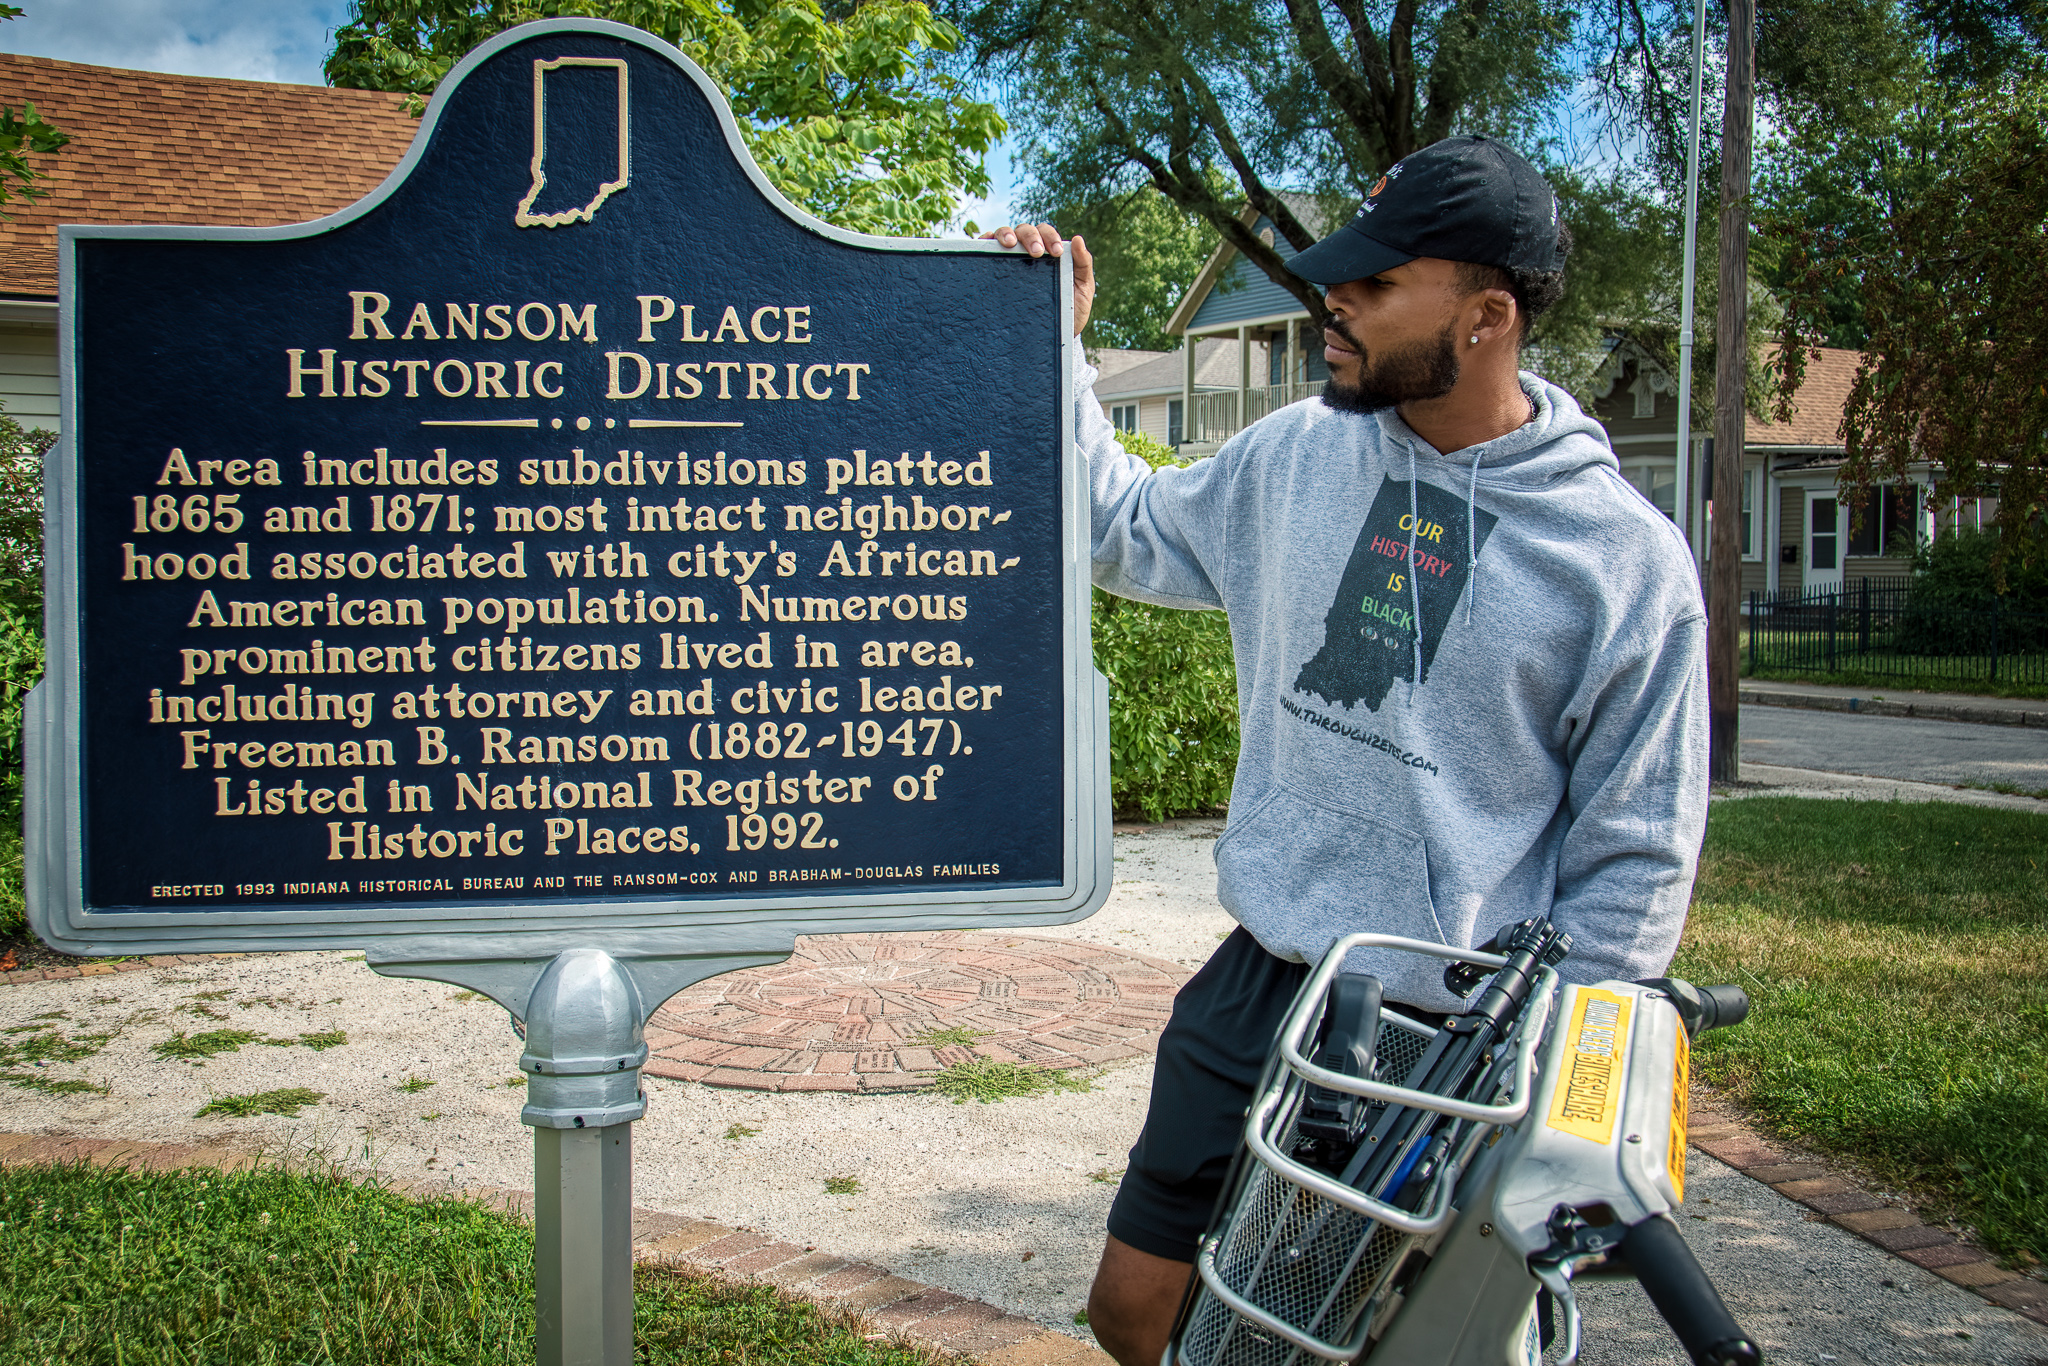 Sampson, at the Ransom Place Historic District plaque.